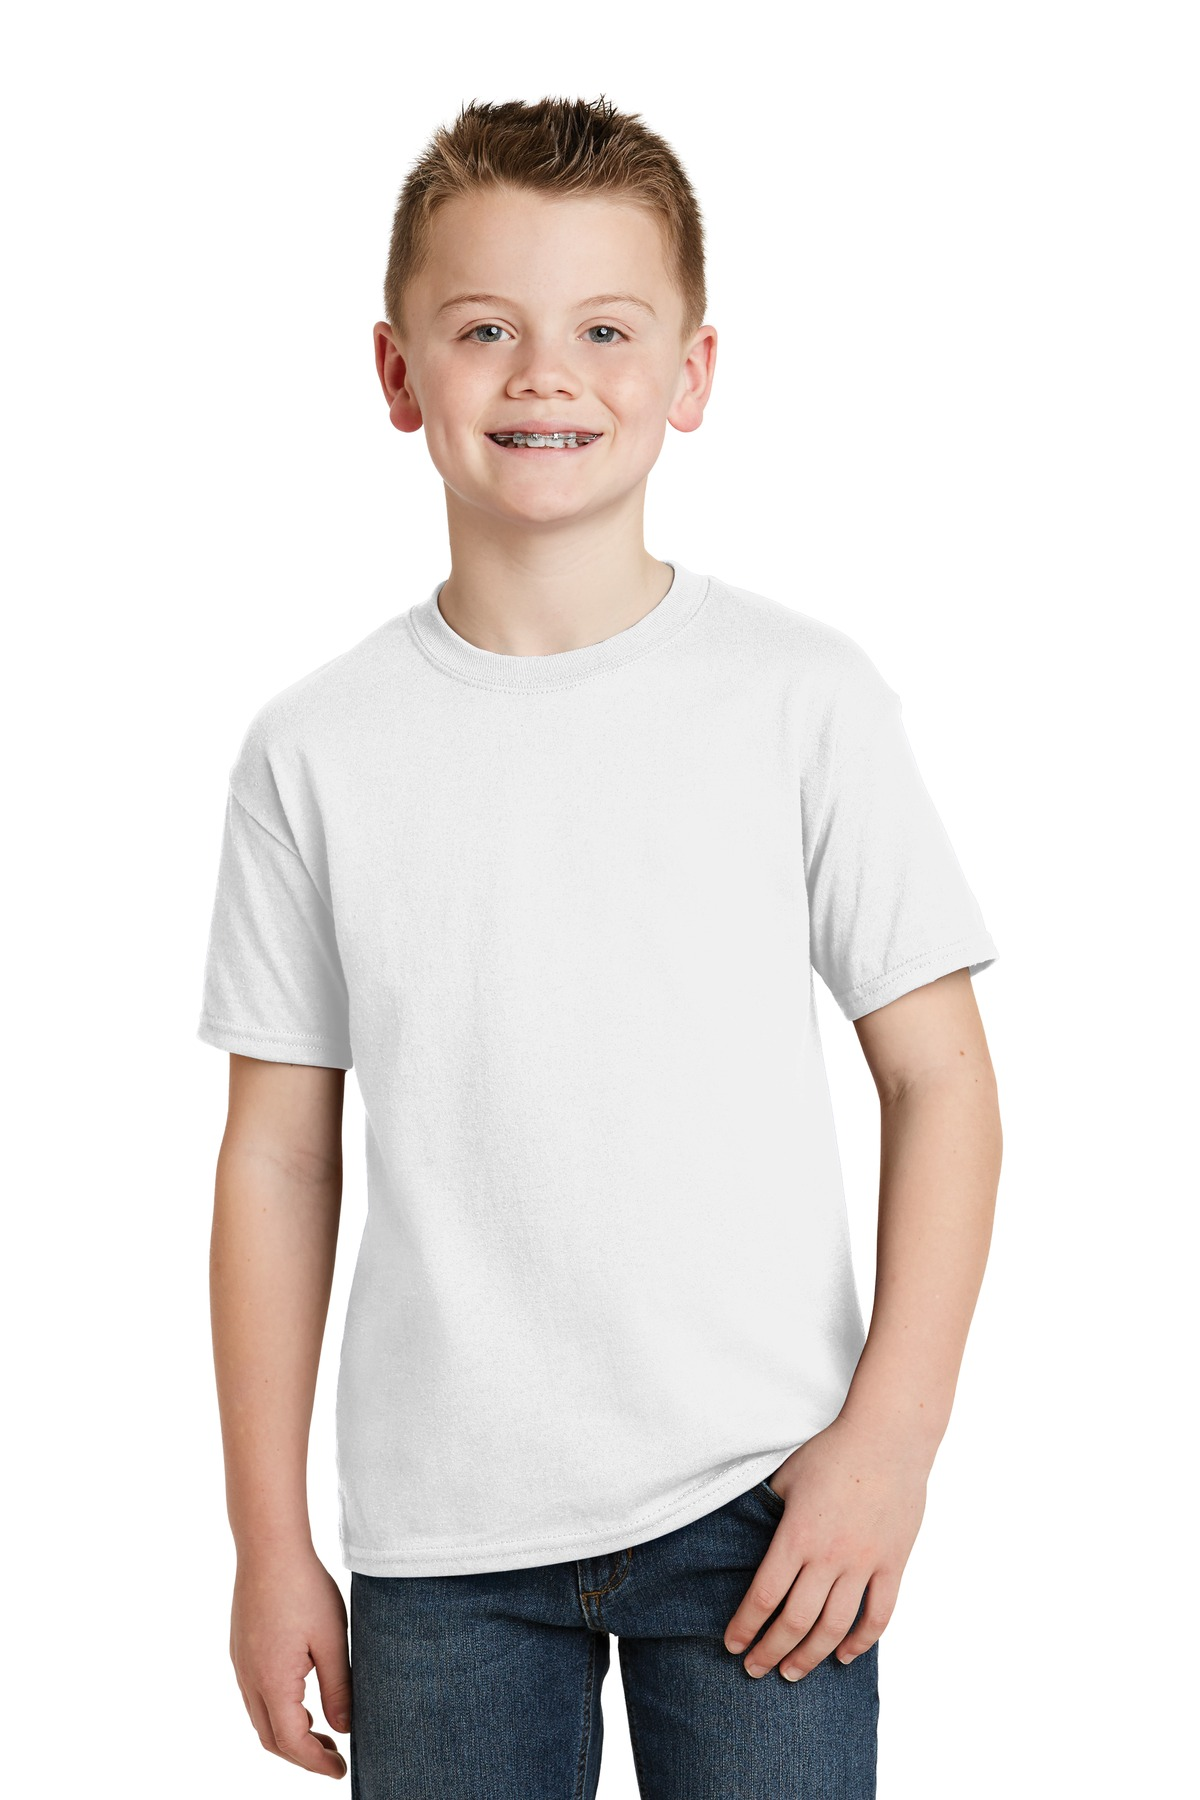 Hanes® - Youth EcoSmart ®  50/50 Cotton/Poly T-Shirt.  5370 - White